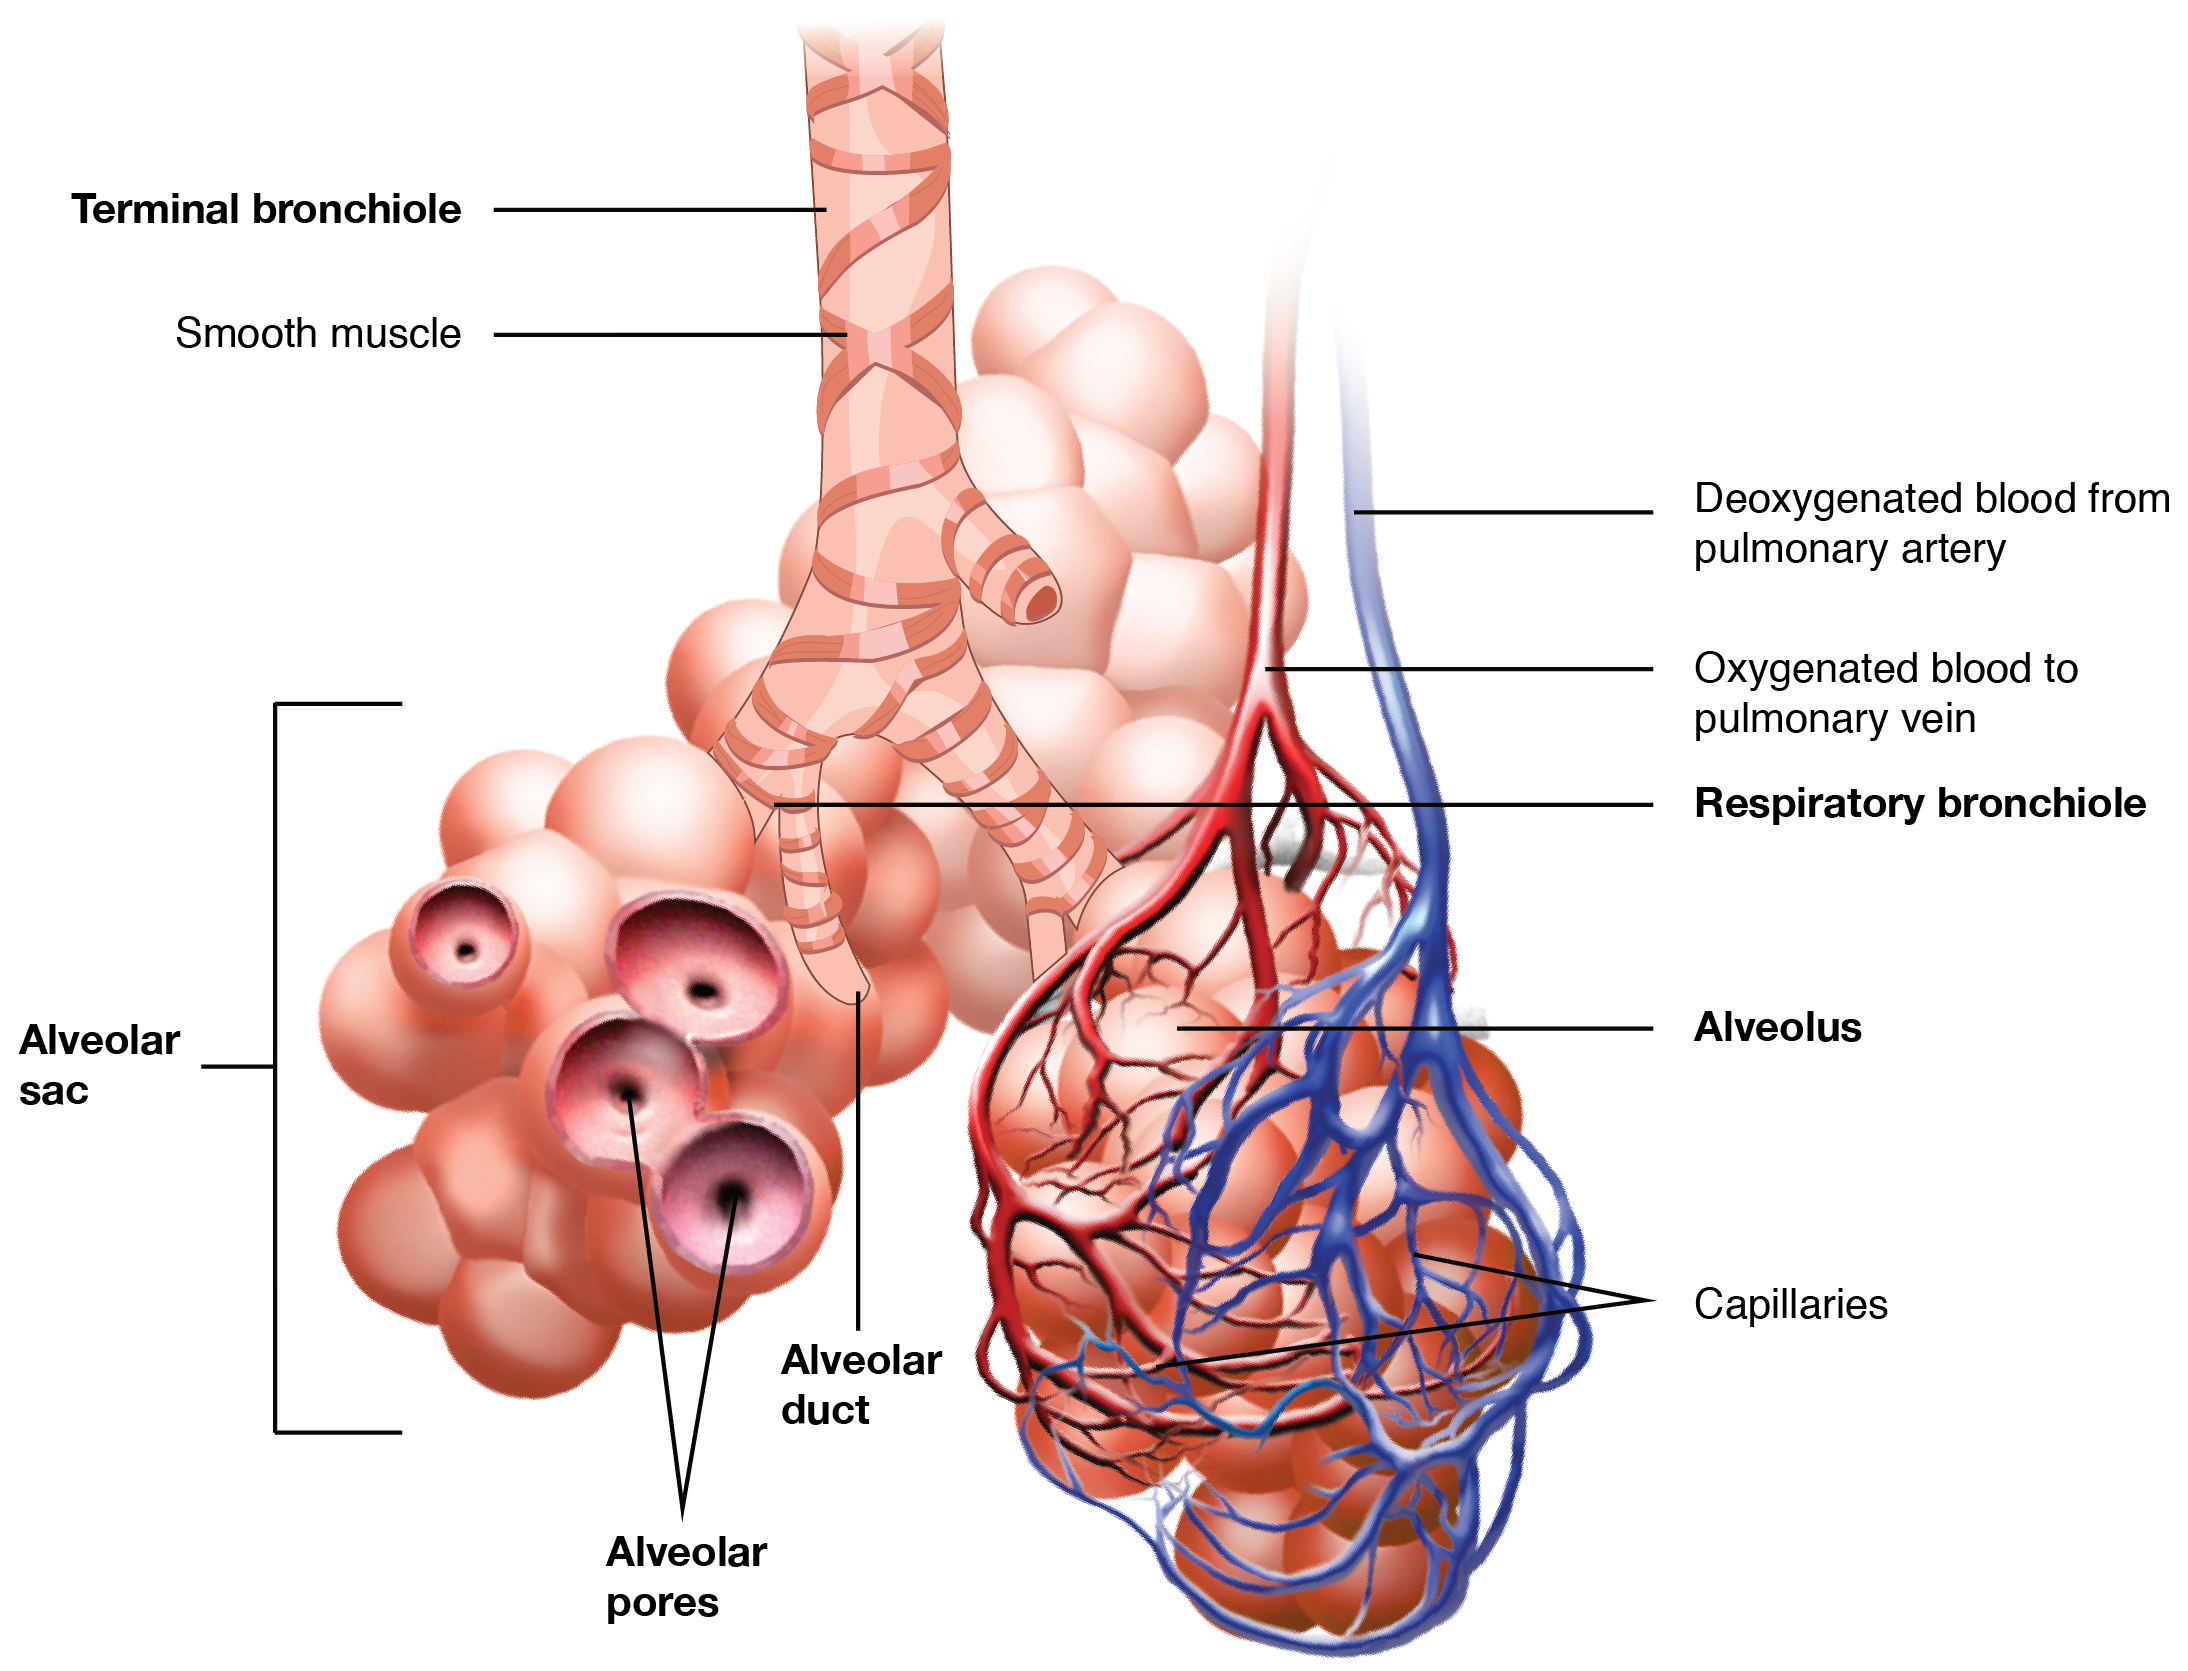 Organs and Structures of the Respiratory System · Anatomy and Physiology